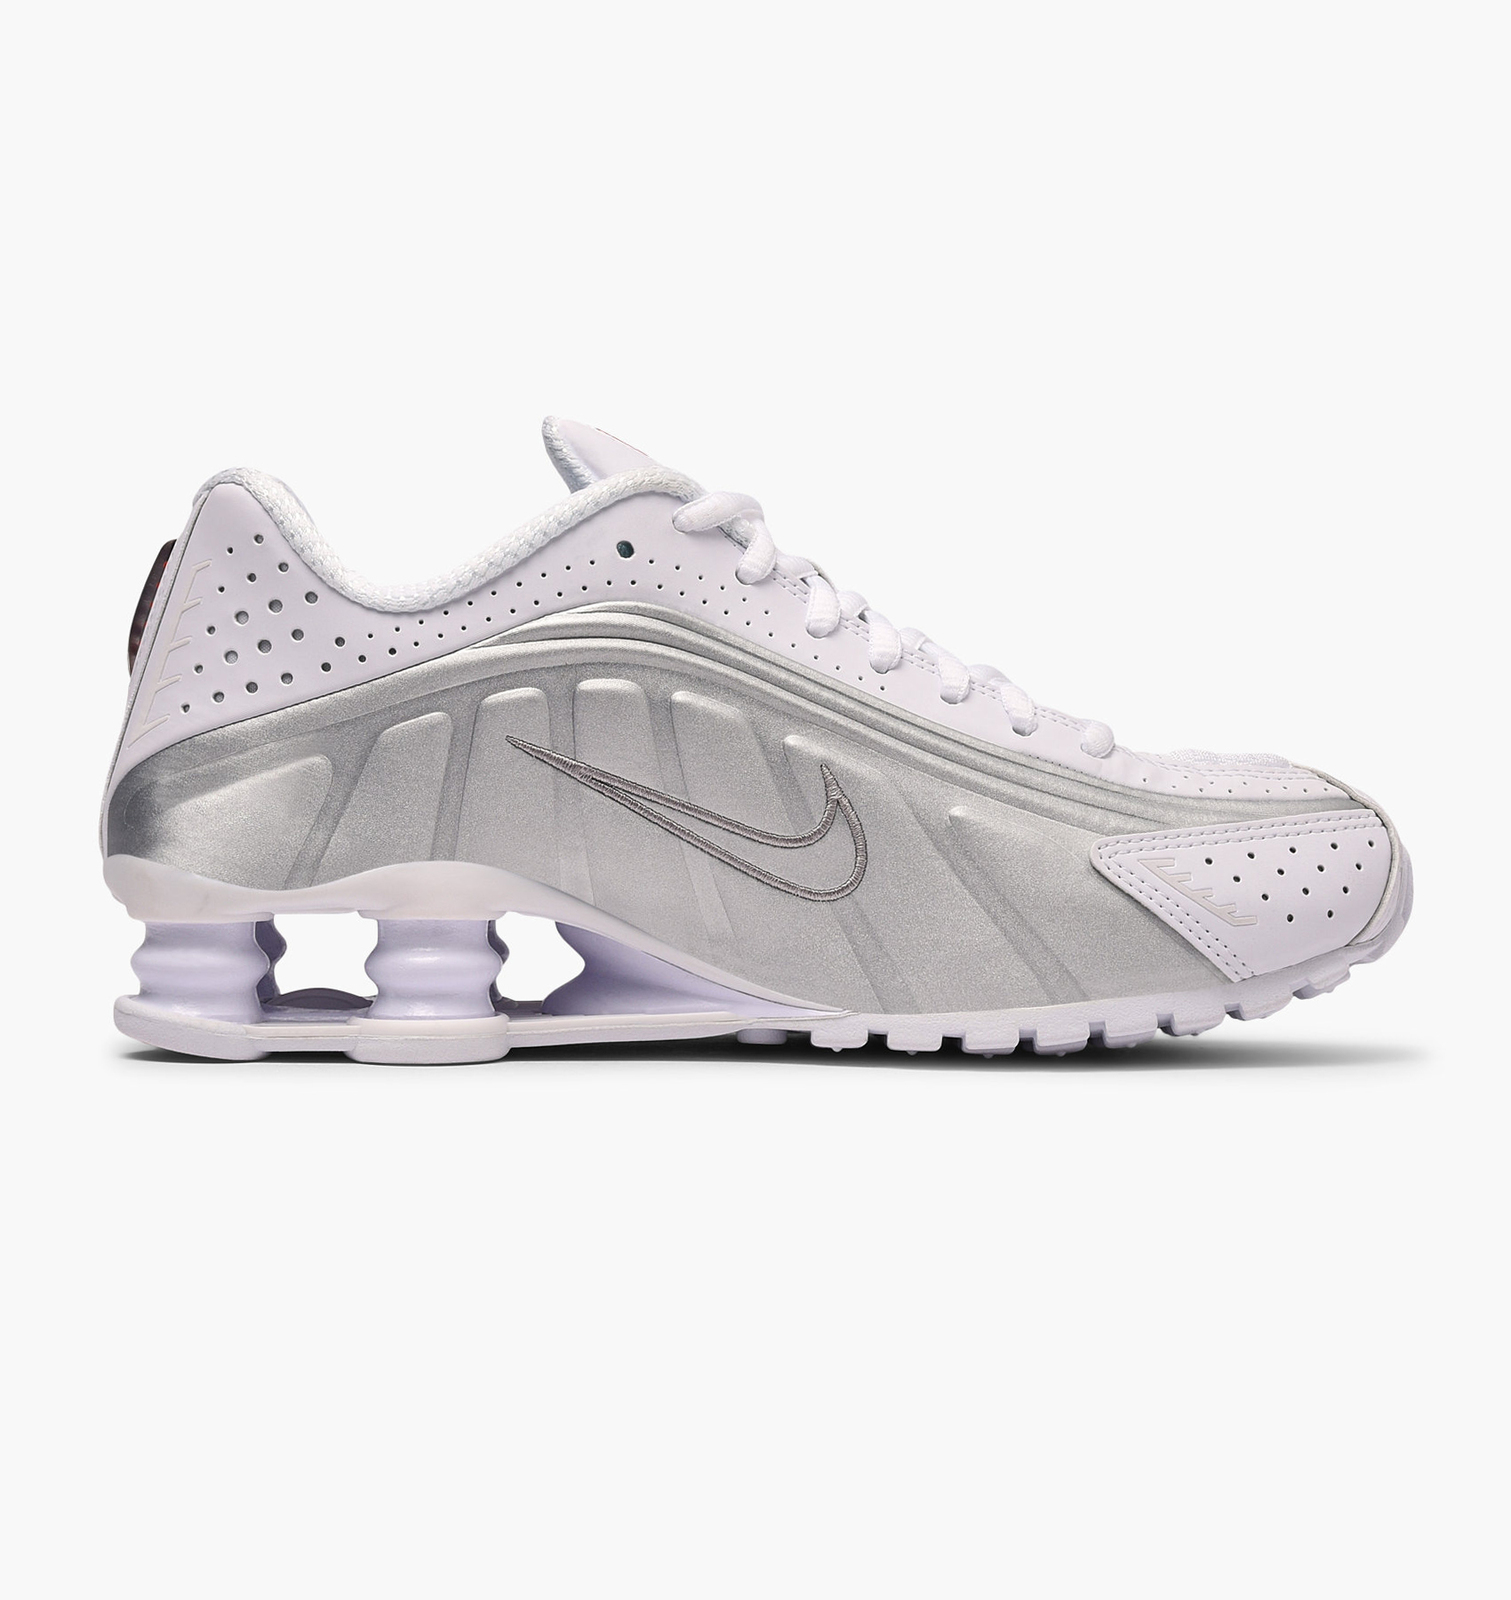 top brands best service first look Nike Shox R4 (White Metallic/ White/ Silver) and 50 similar items